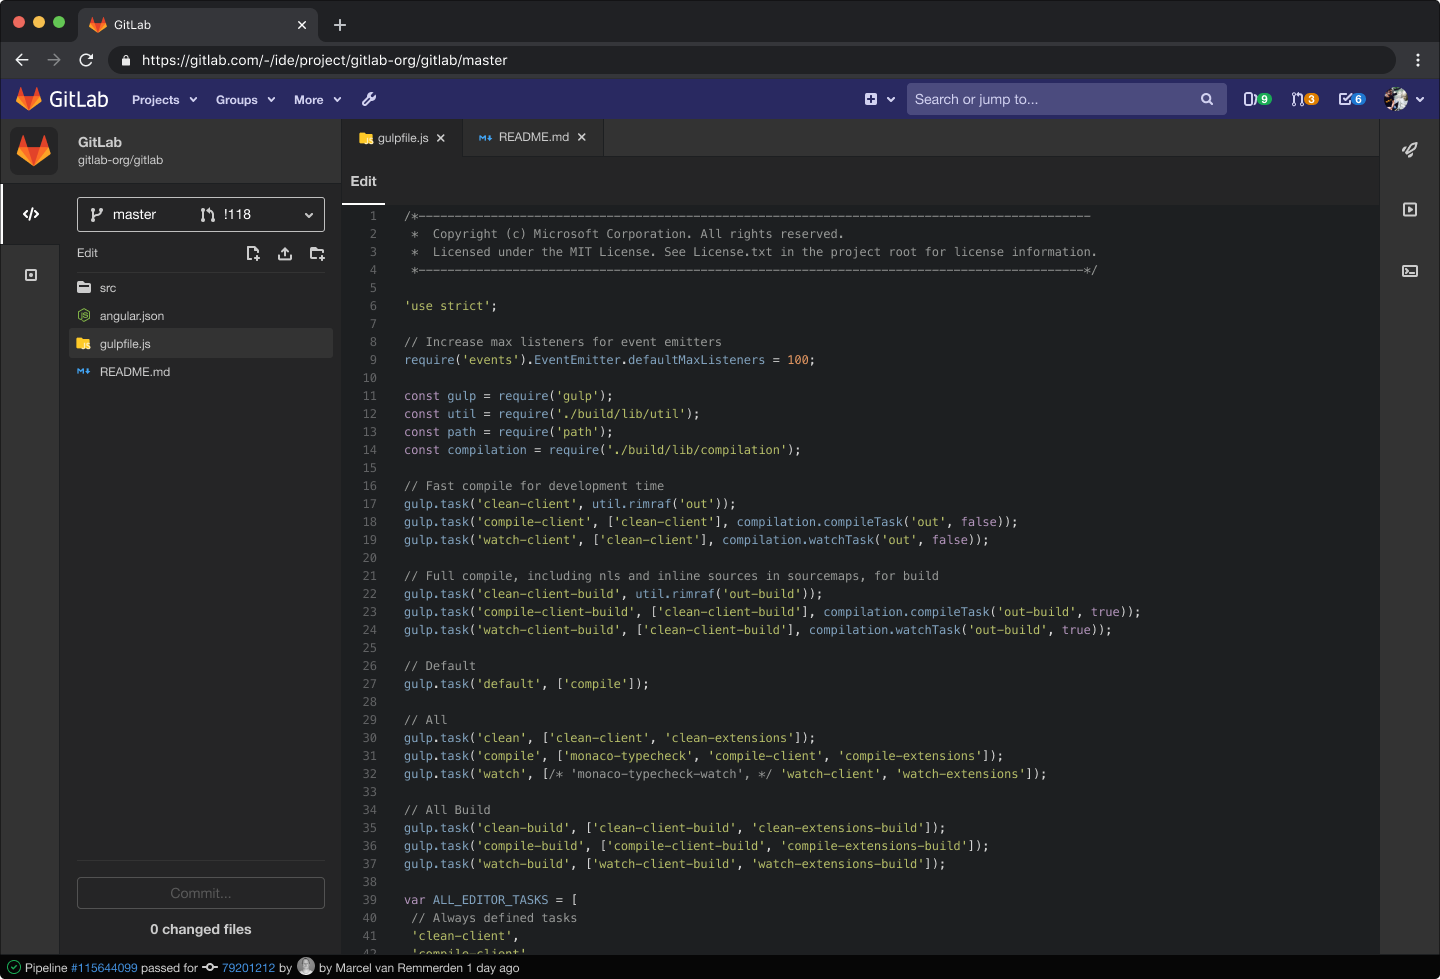 Dark Theme in the Web IDE